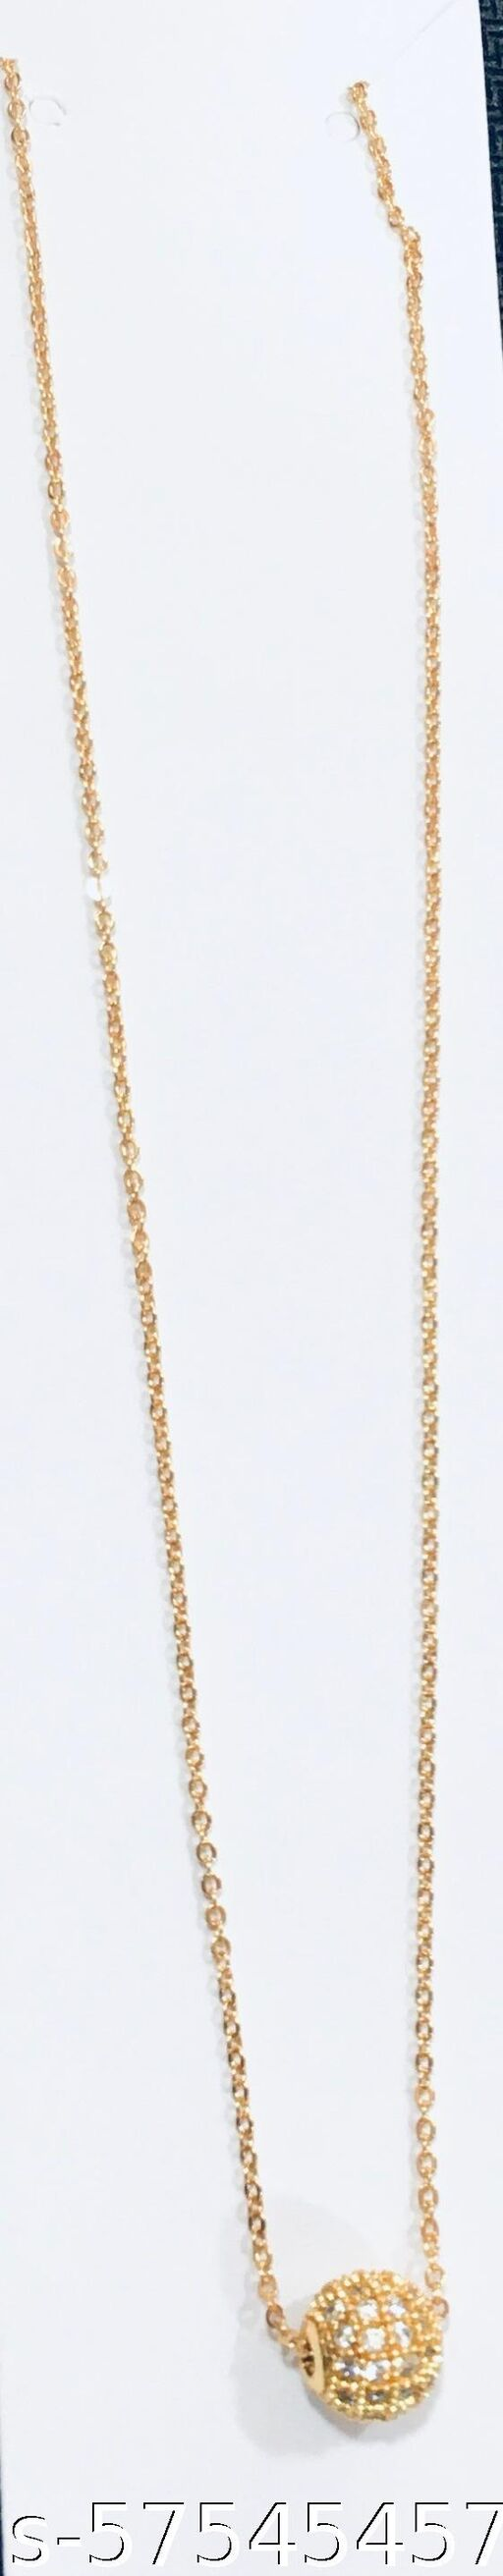 Jewellery Micro Gold Plated White American Diamond round gold  Pendant With Chain  Necklace Golden Chain Pendant for Women and Girls